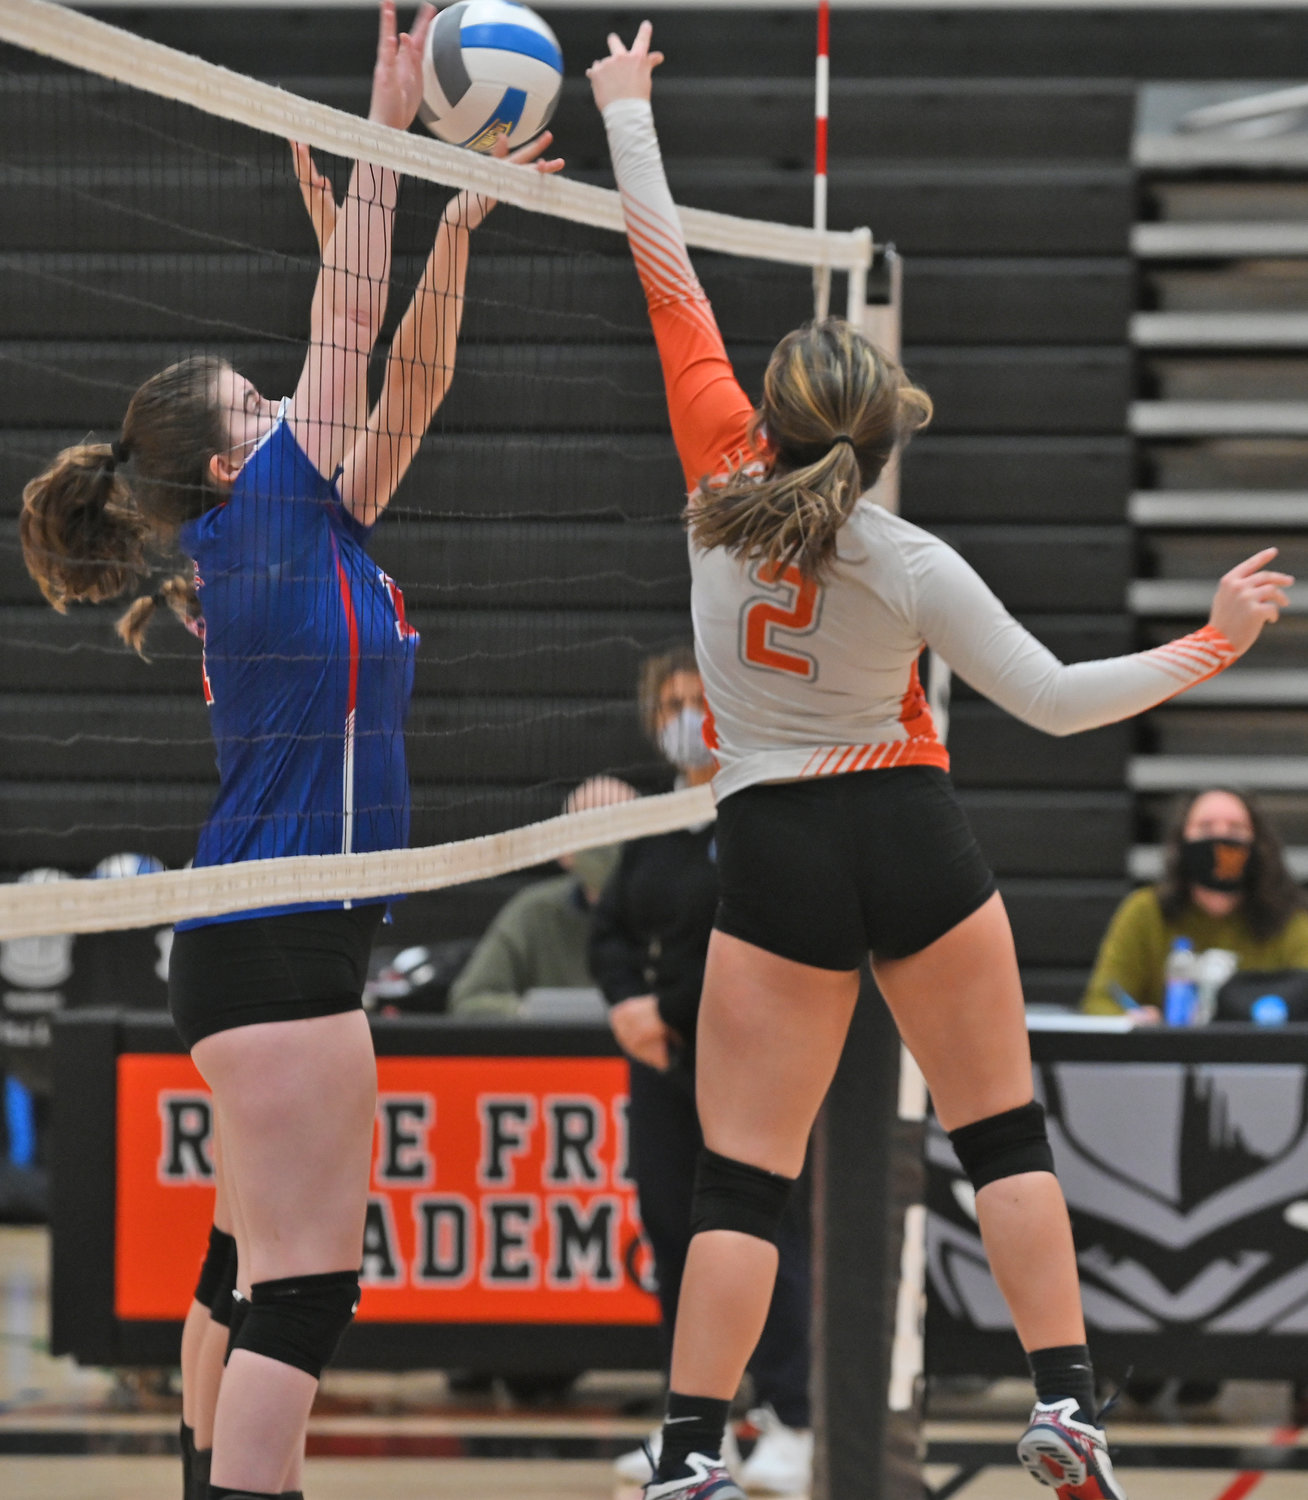 PLAY AT THE NET — Rome Free Academy sophomore Alyce Frost, right, makes a play at the net as New Hartford's Cece Dillion contests during the first set of Monday night's Tri-Valley League game at RFA. Match details were unavailable at press time.